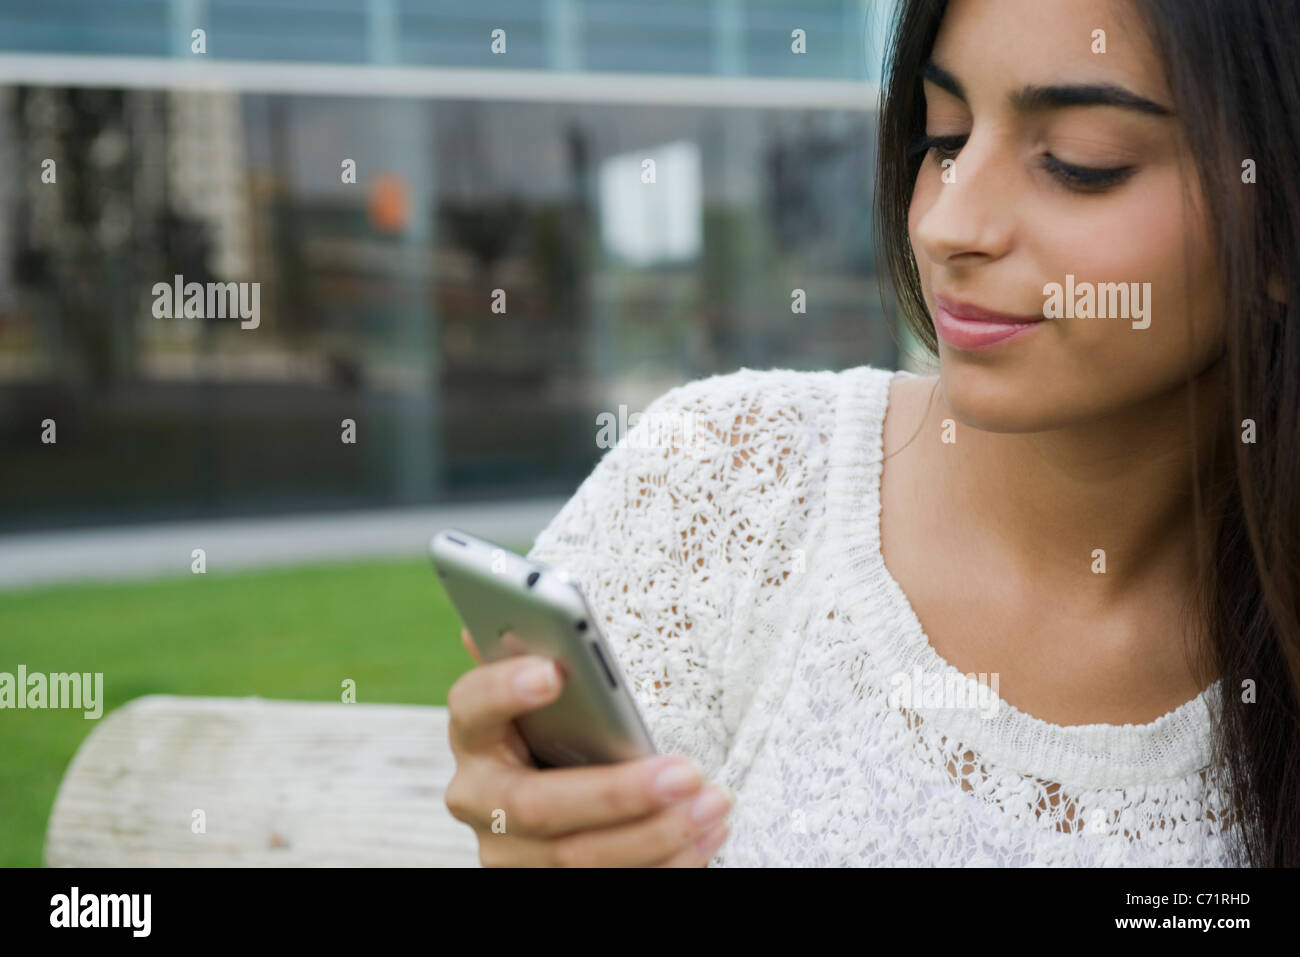 Woman text messaging - Stock Image